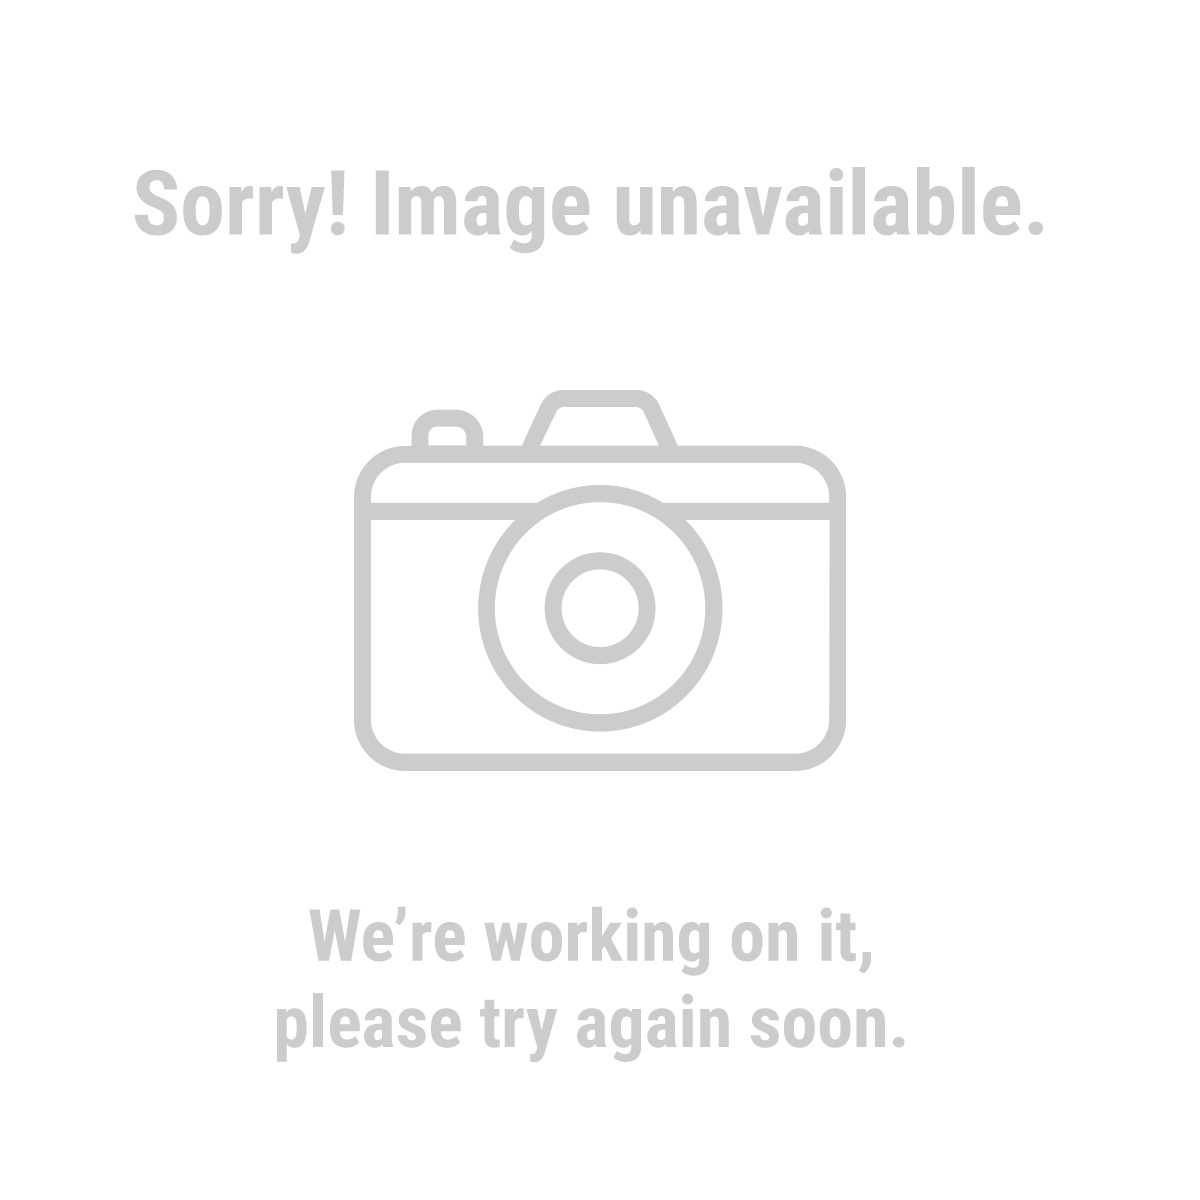 62959 Slide Hammer and Puller Set 14 Pc